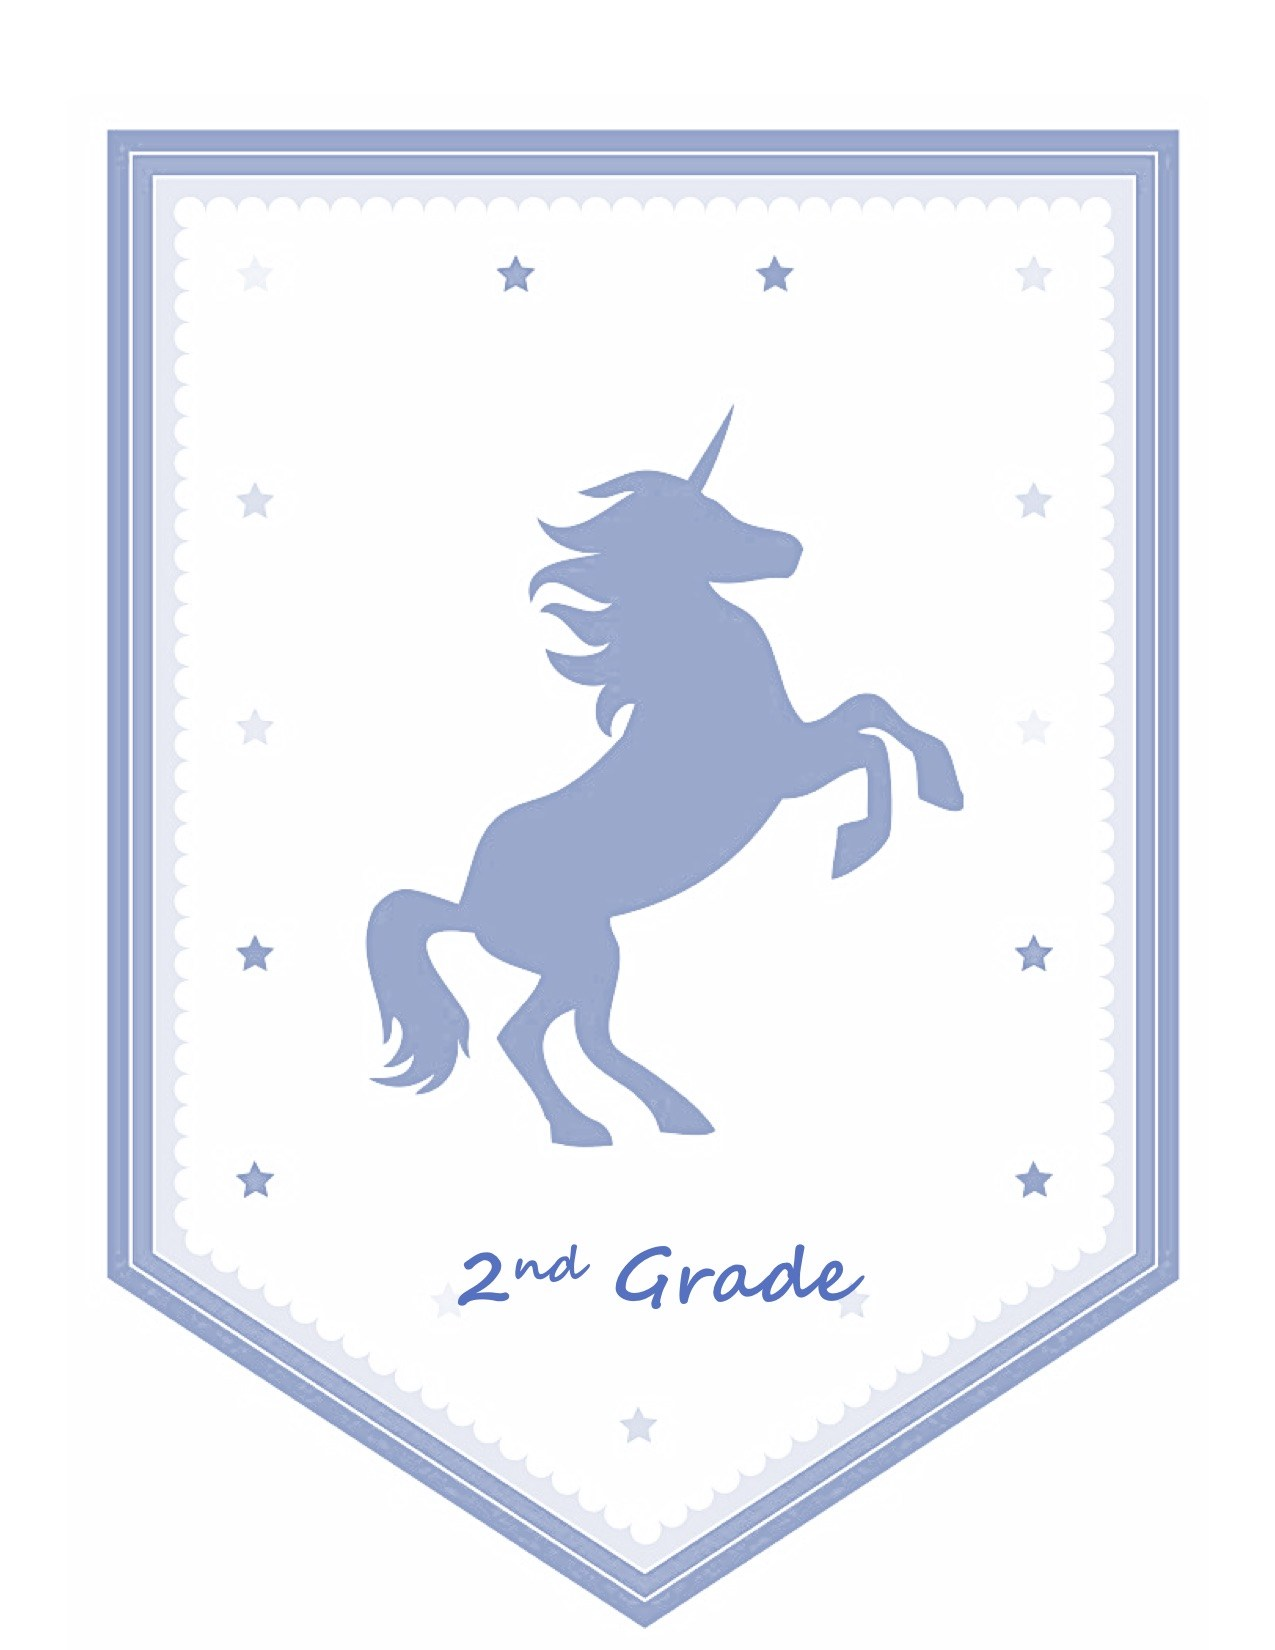 2nd Grade Unicorn